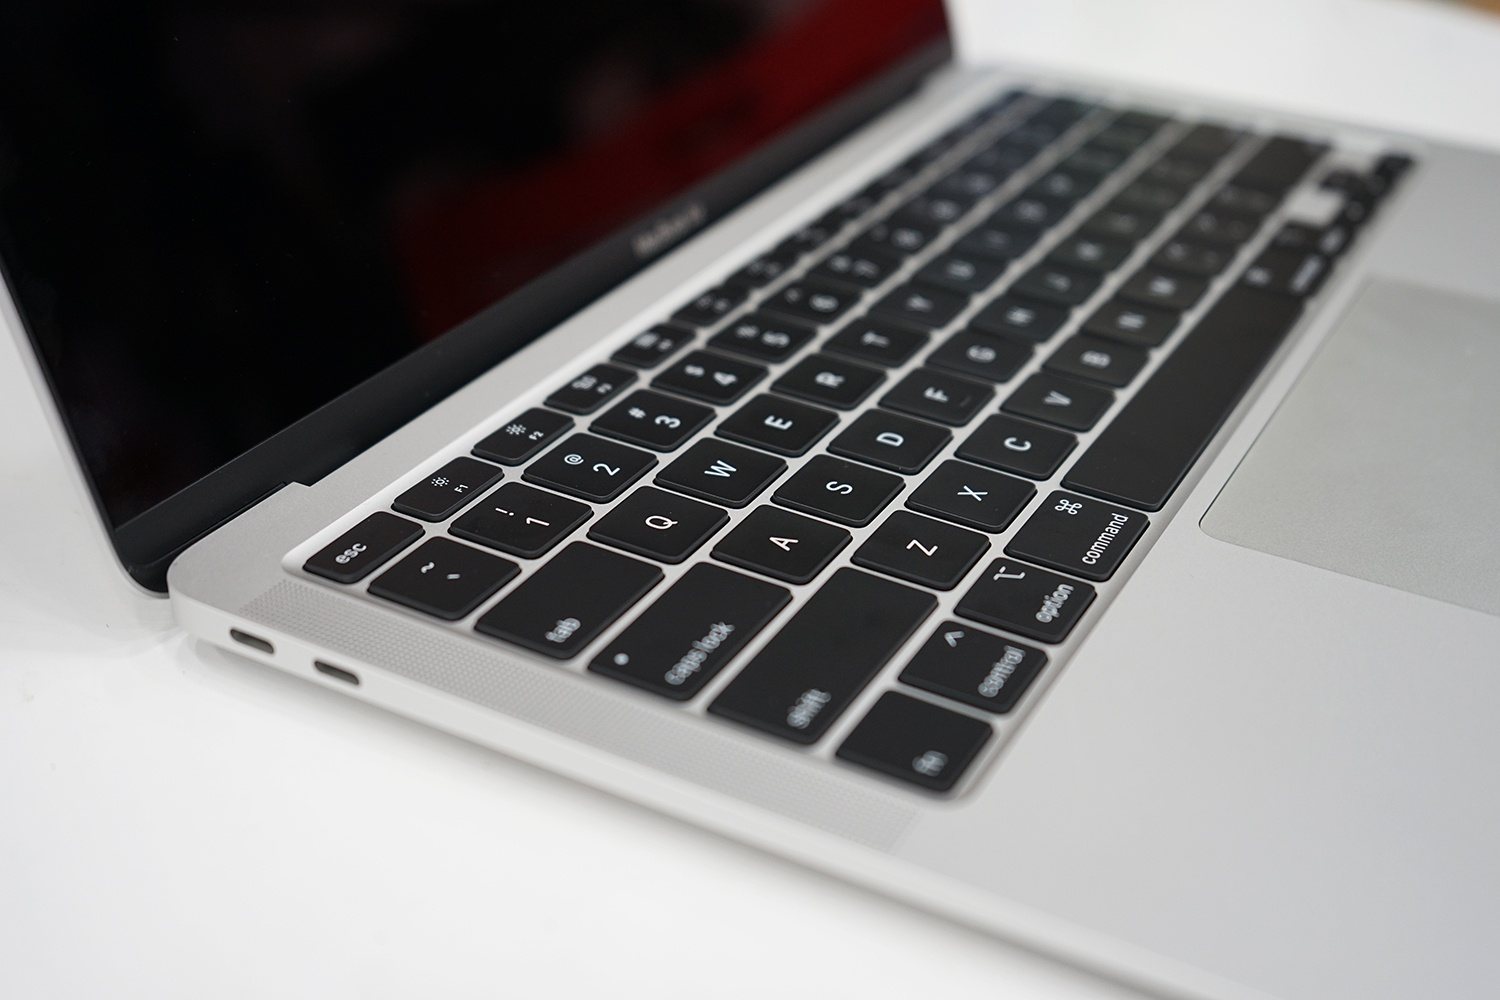 macbook air 2020 dau tien ve viet nam